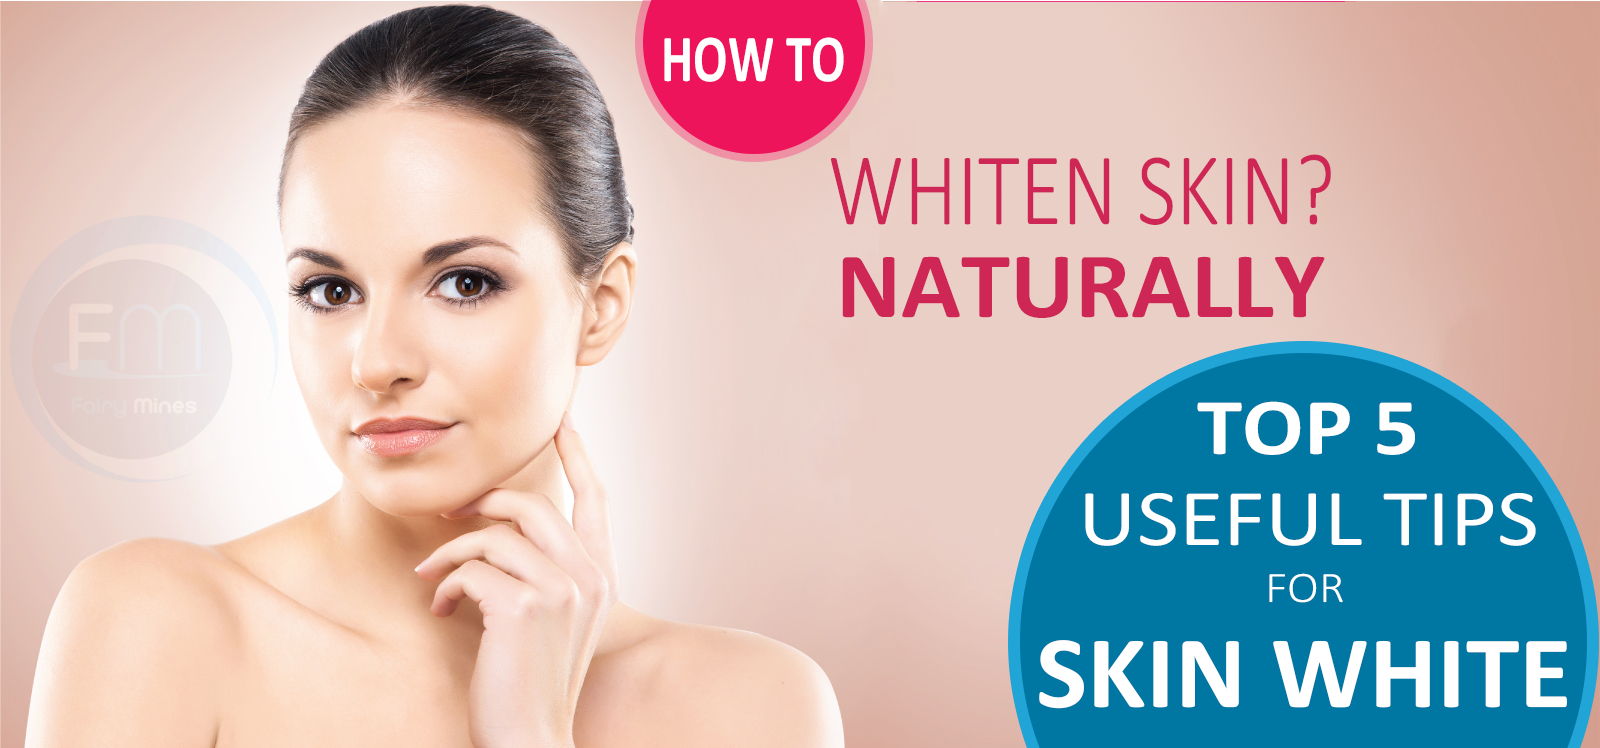 how to whiten skin